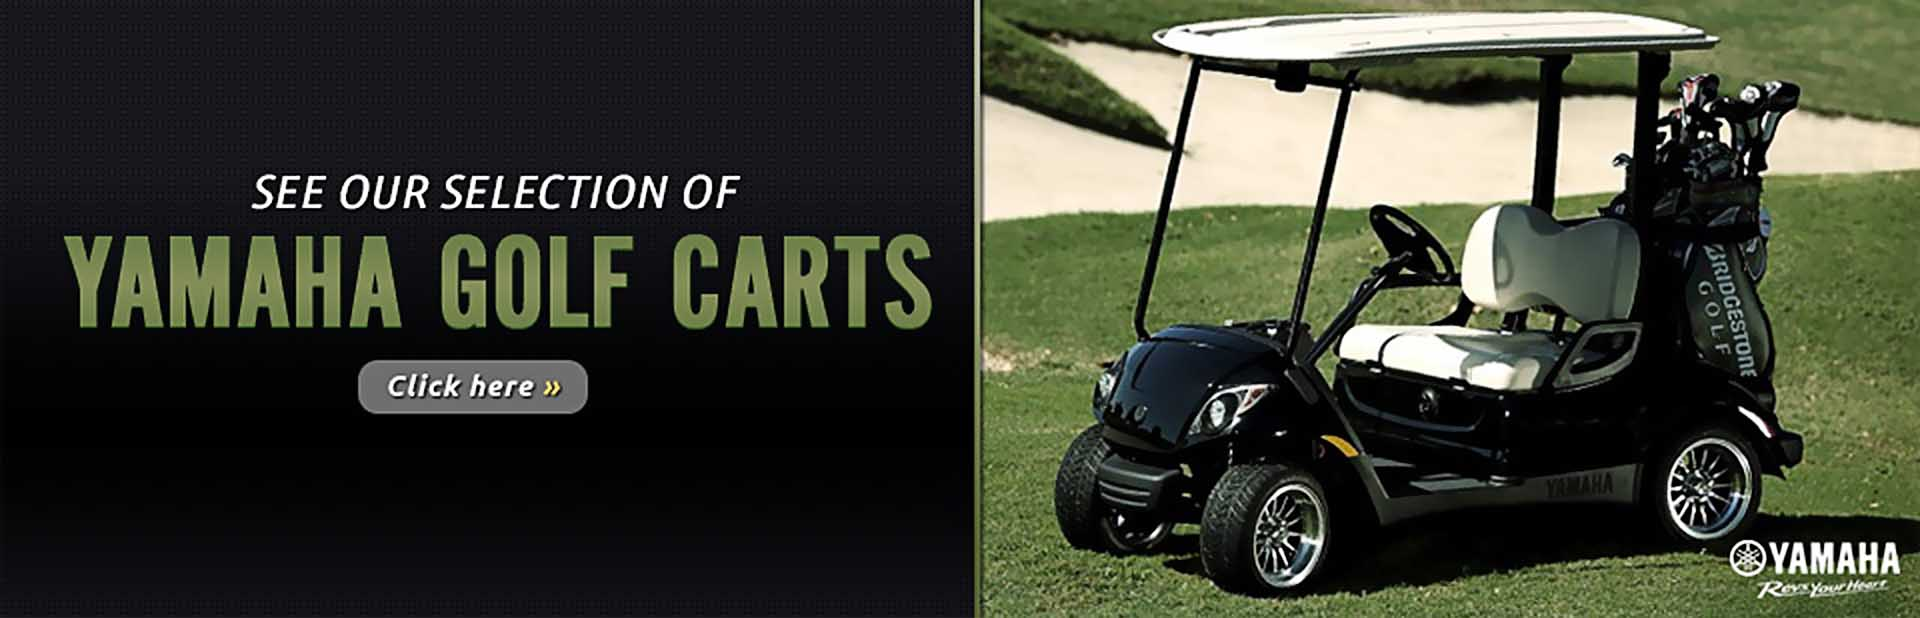 Click here to browse Yamaha golf carts.